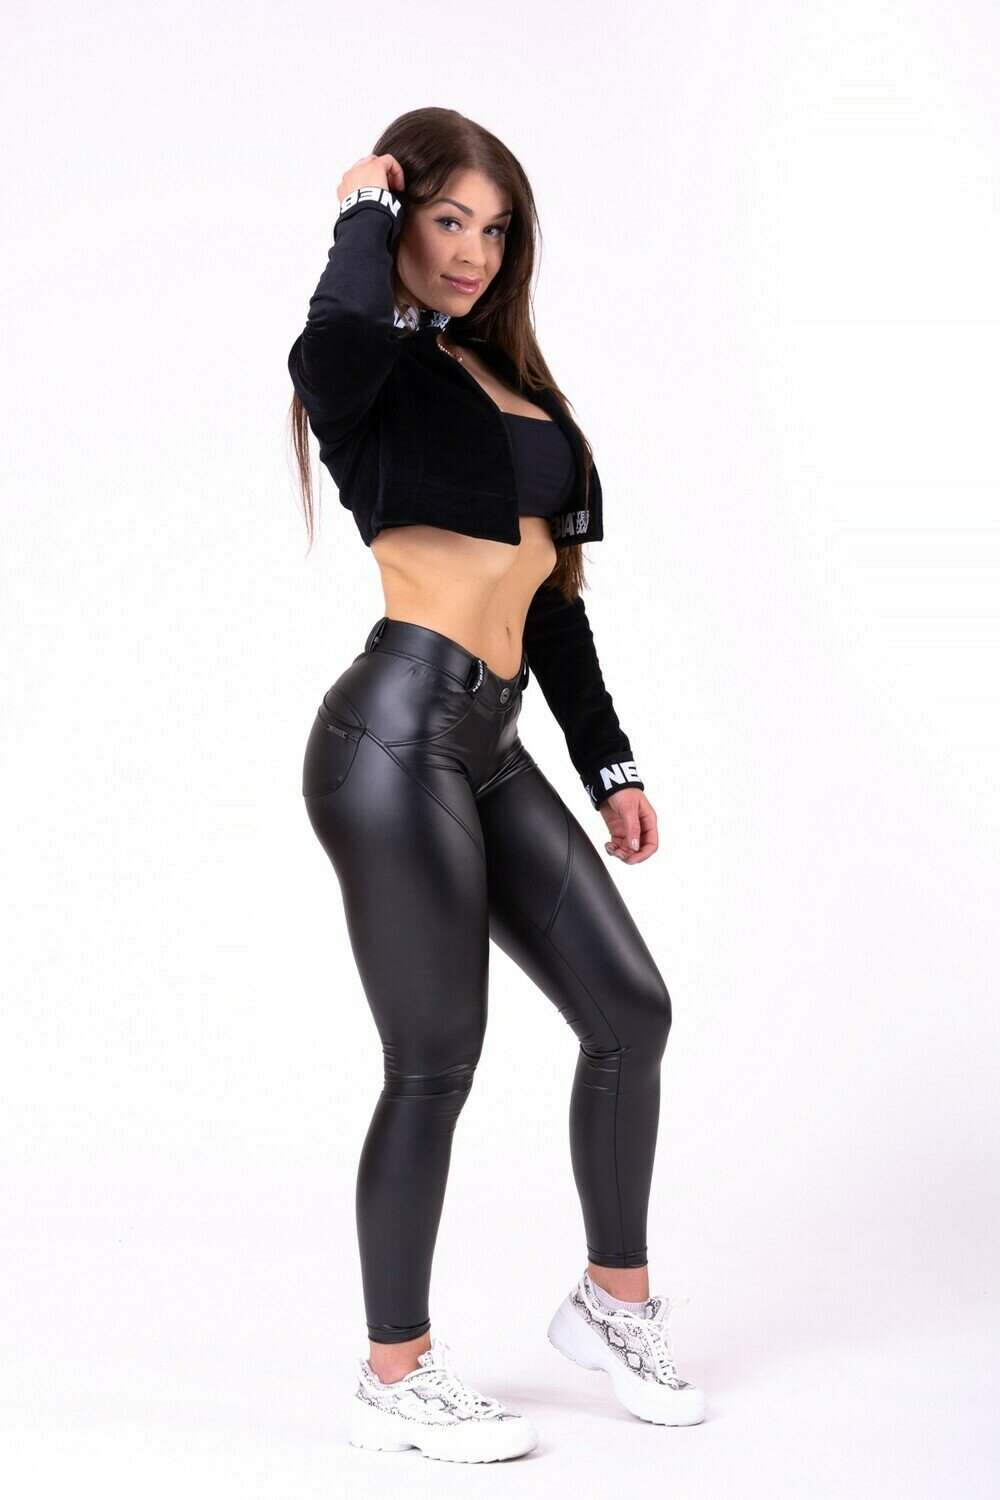 "БРЮКИ NEBBIA BUBBLE BUTT PANTS ""CAT WOMAN"" 669 BLACK"